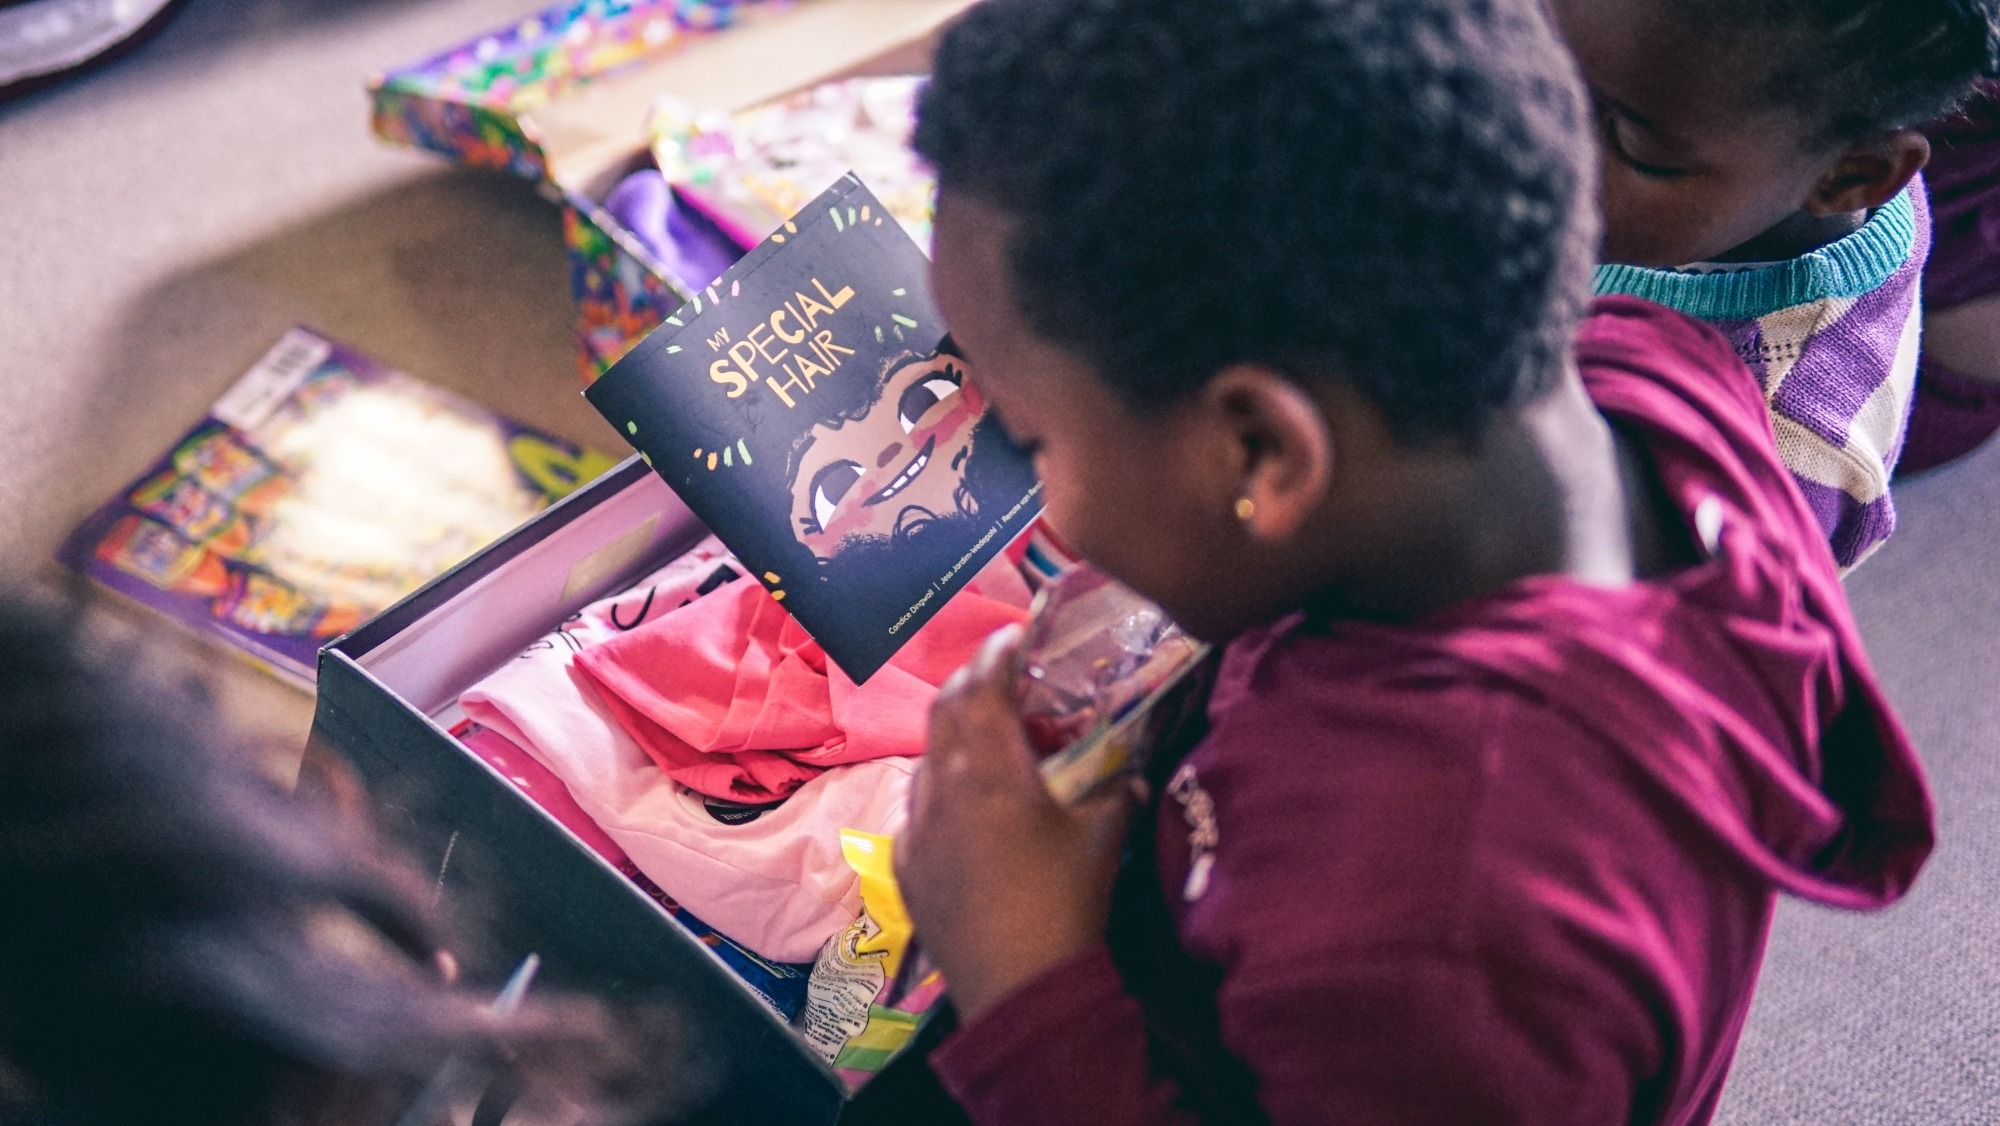 MySchool MyVillage MyPlanet Teams Up With Book Dash To Donate 50,000 Books In Santa Shoeboxes